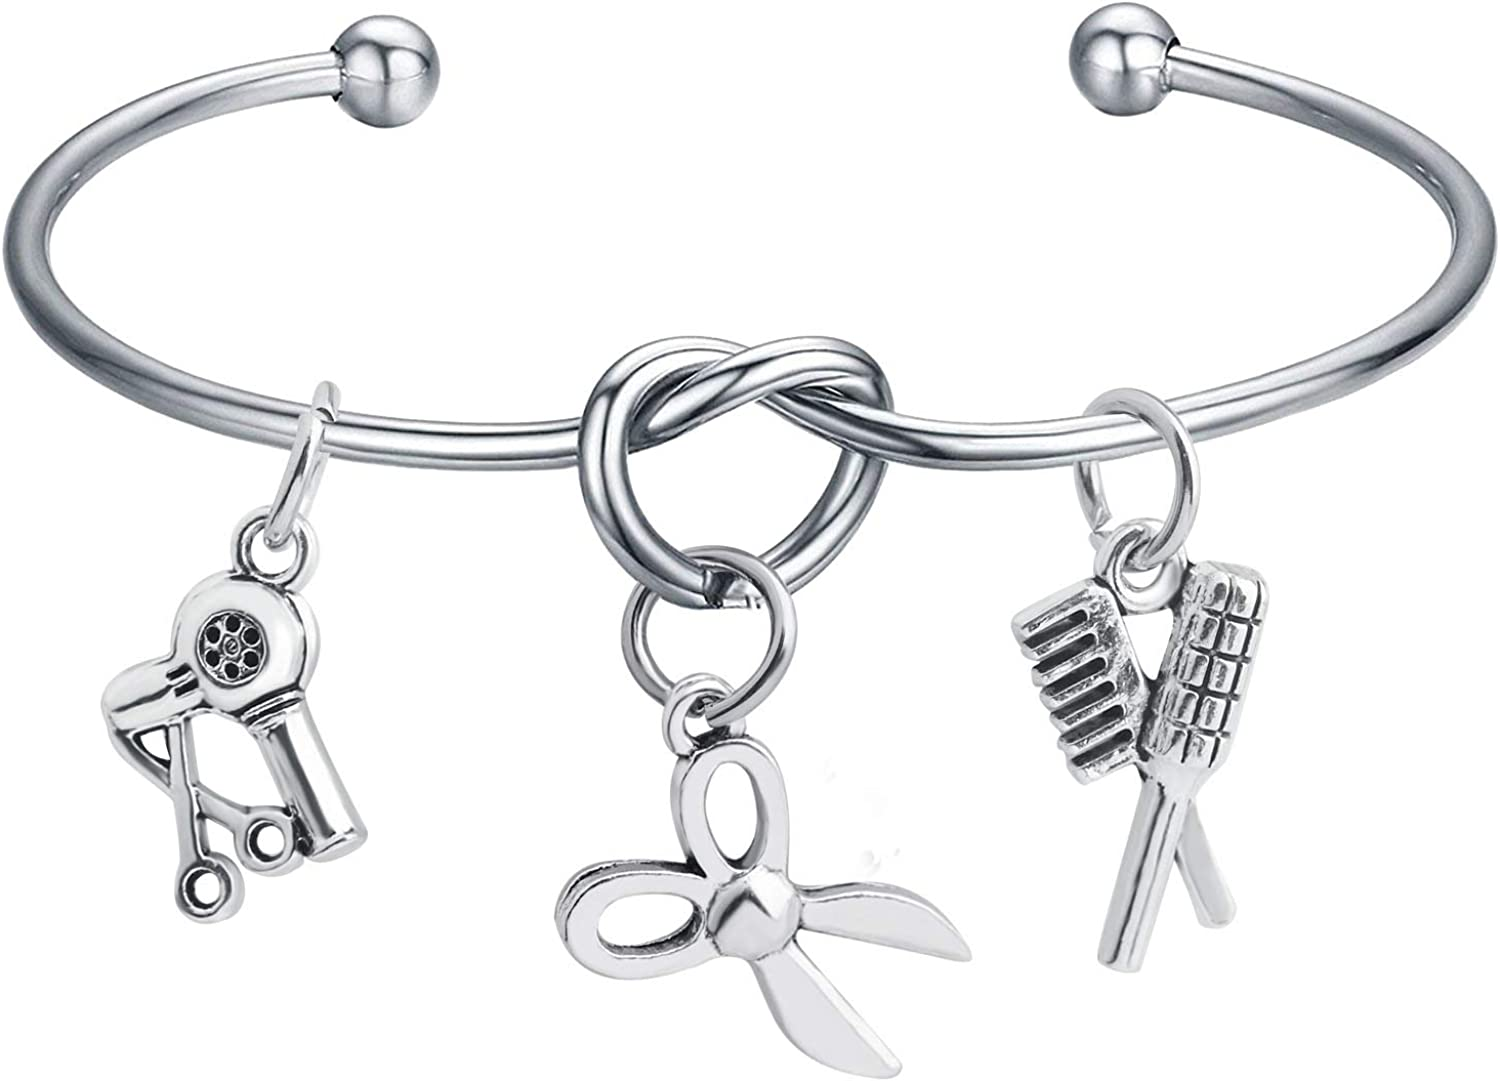 BAUNA Hairdresser Gifts Cosmetology Graduation Gift 2019 Hair Stylist Cuff Bracelet Necklace Gift for Stylist Cosmetology Student